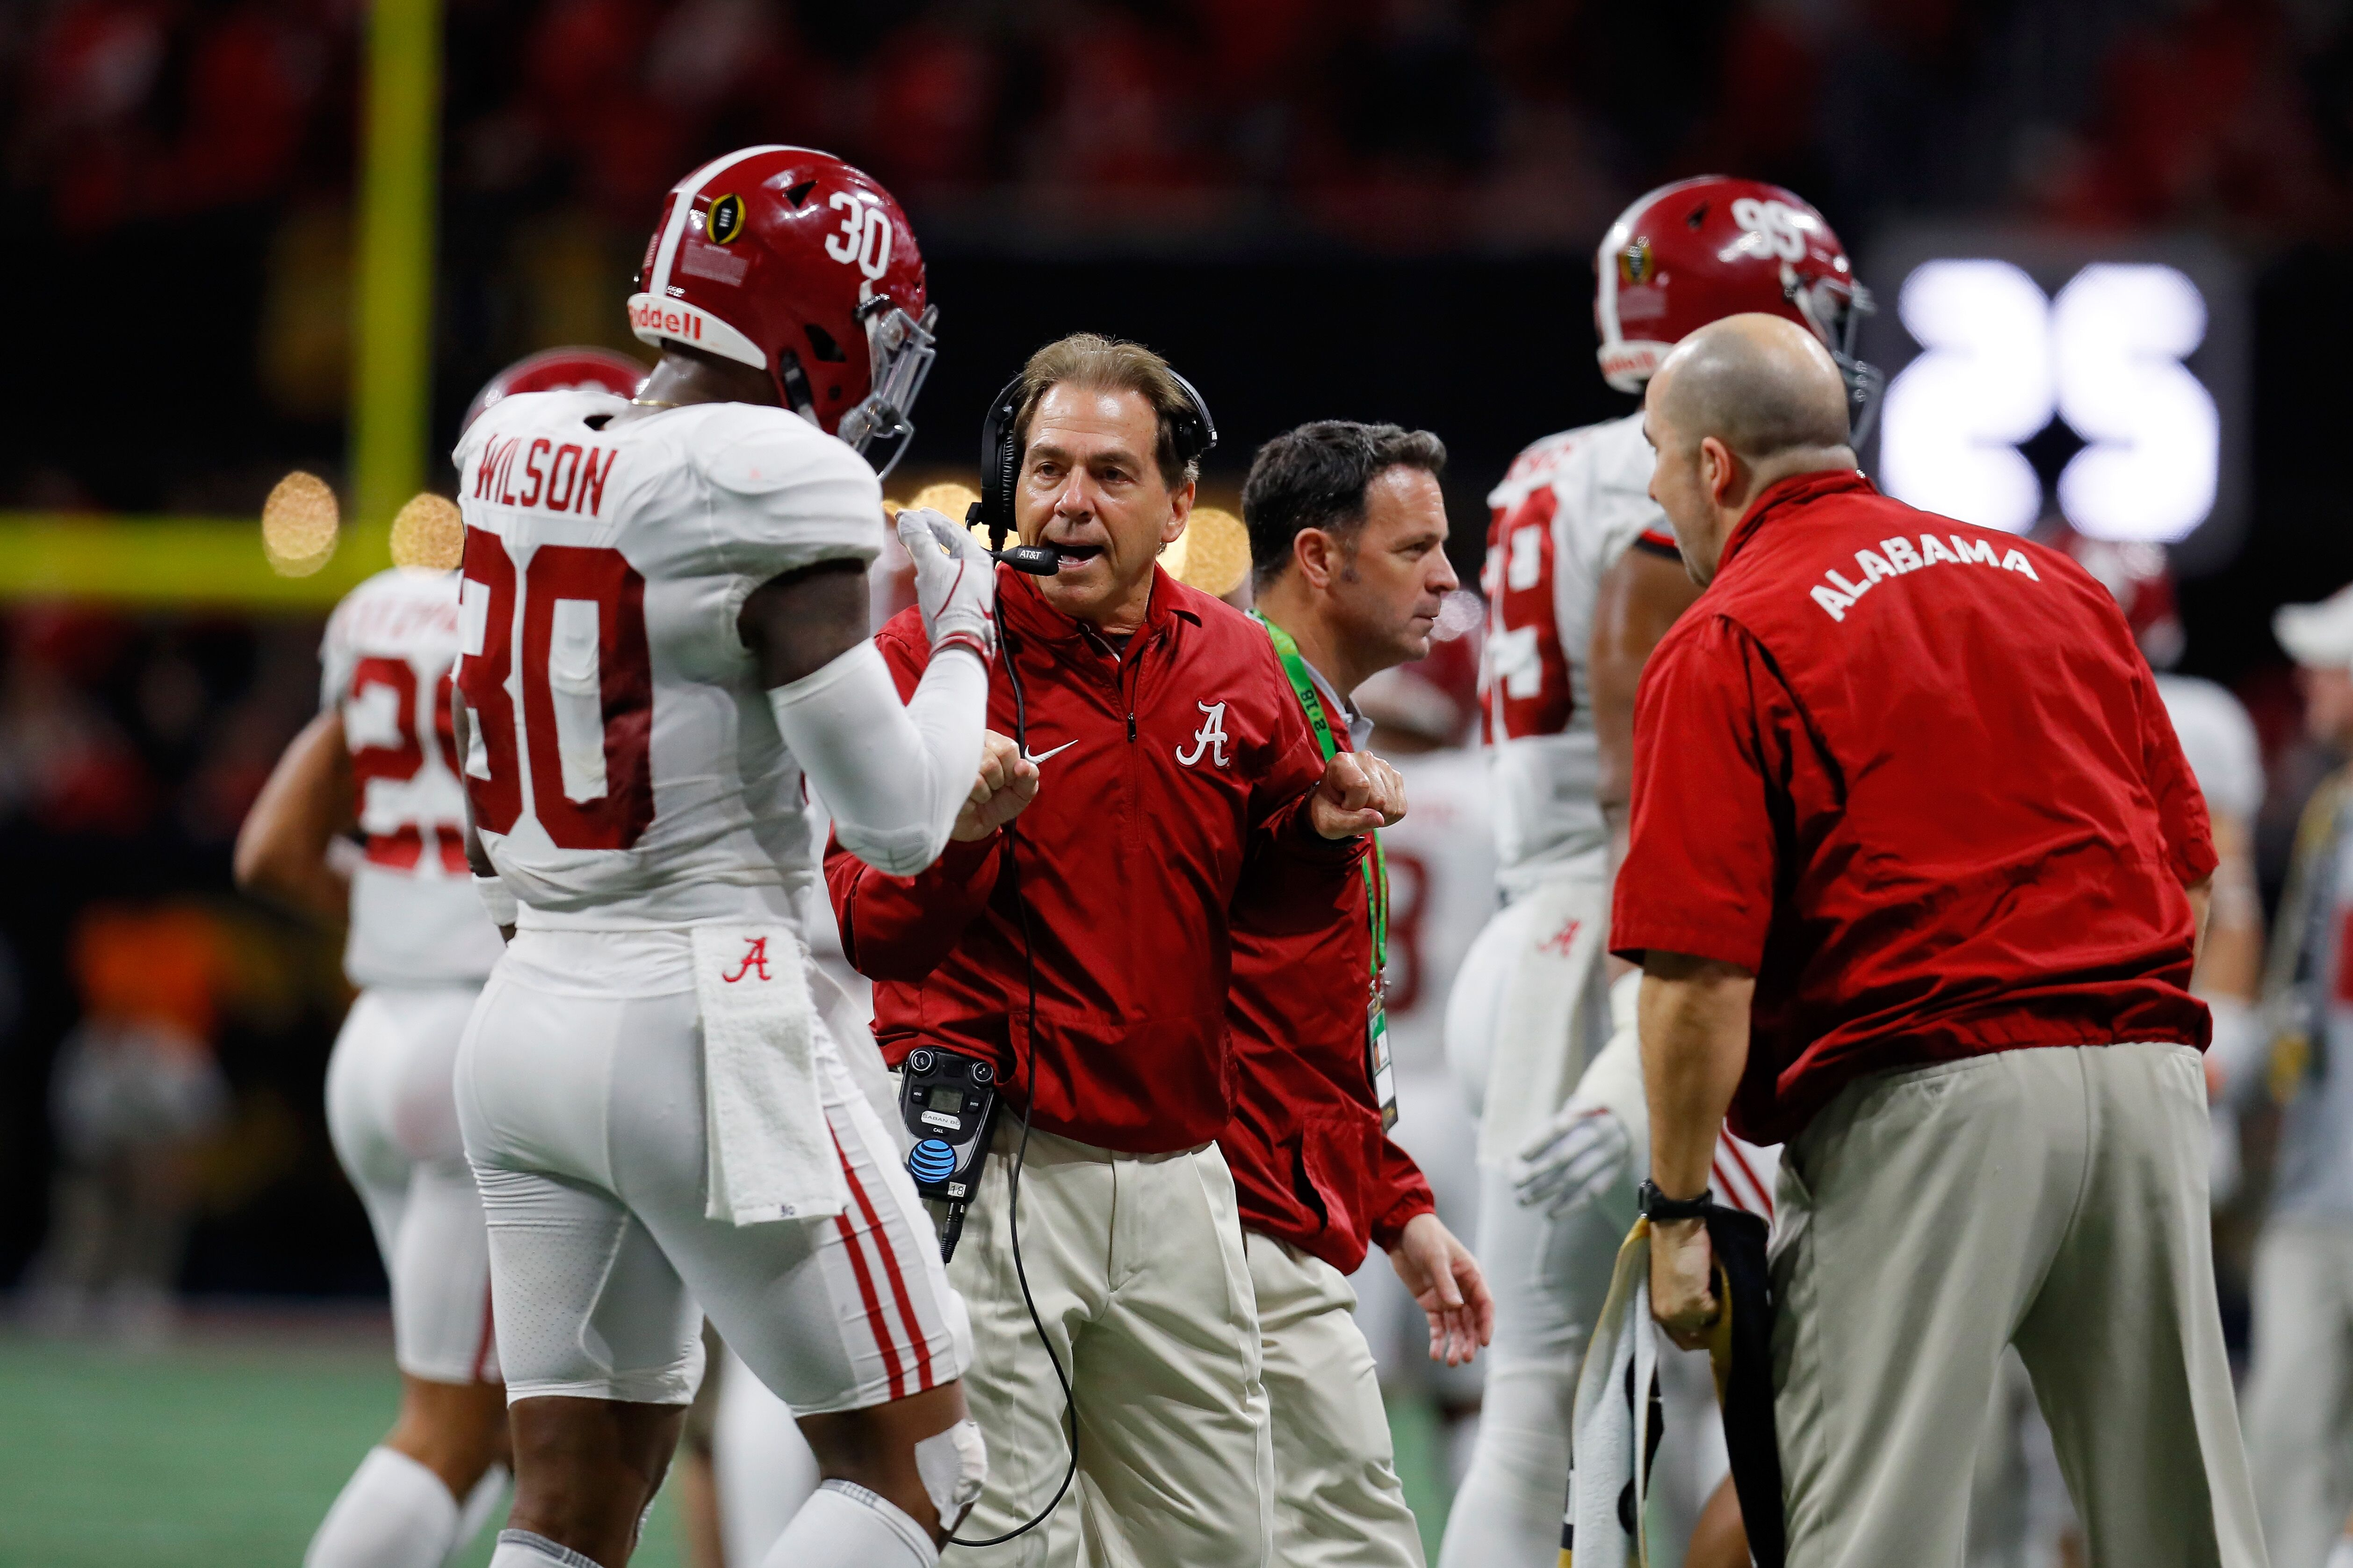 902755228-cfp-national-championship-presented-by-at.jpg